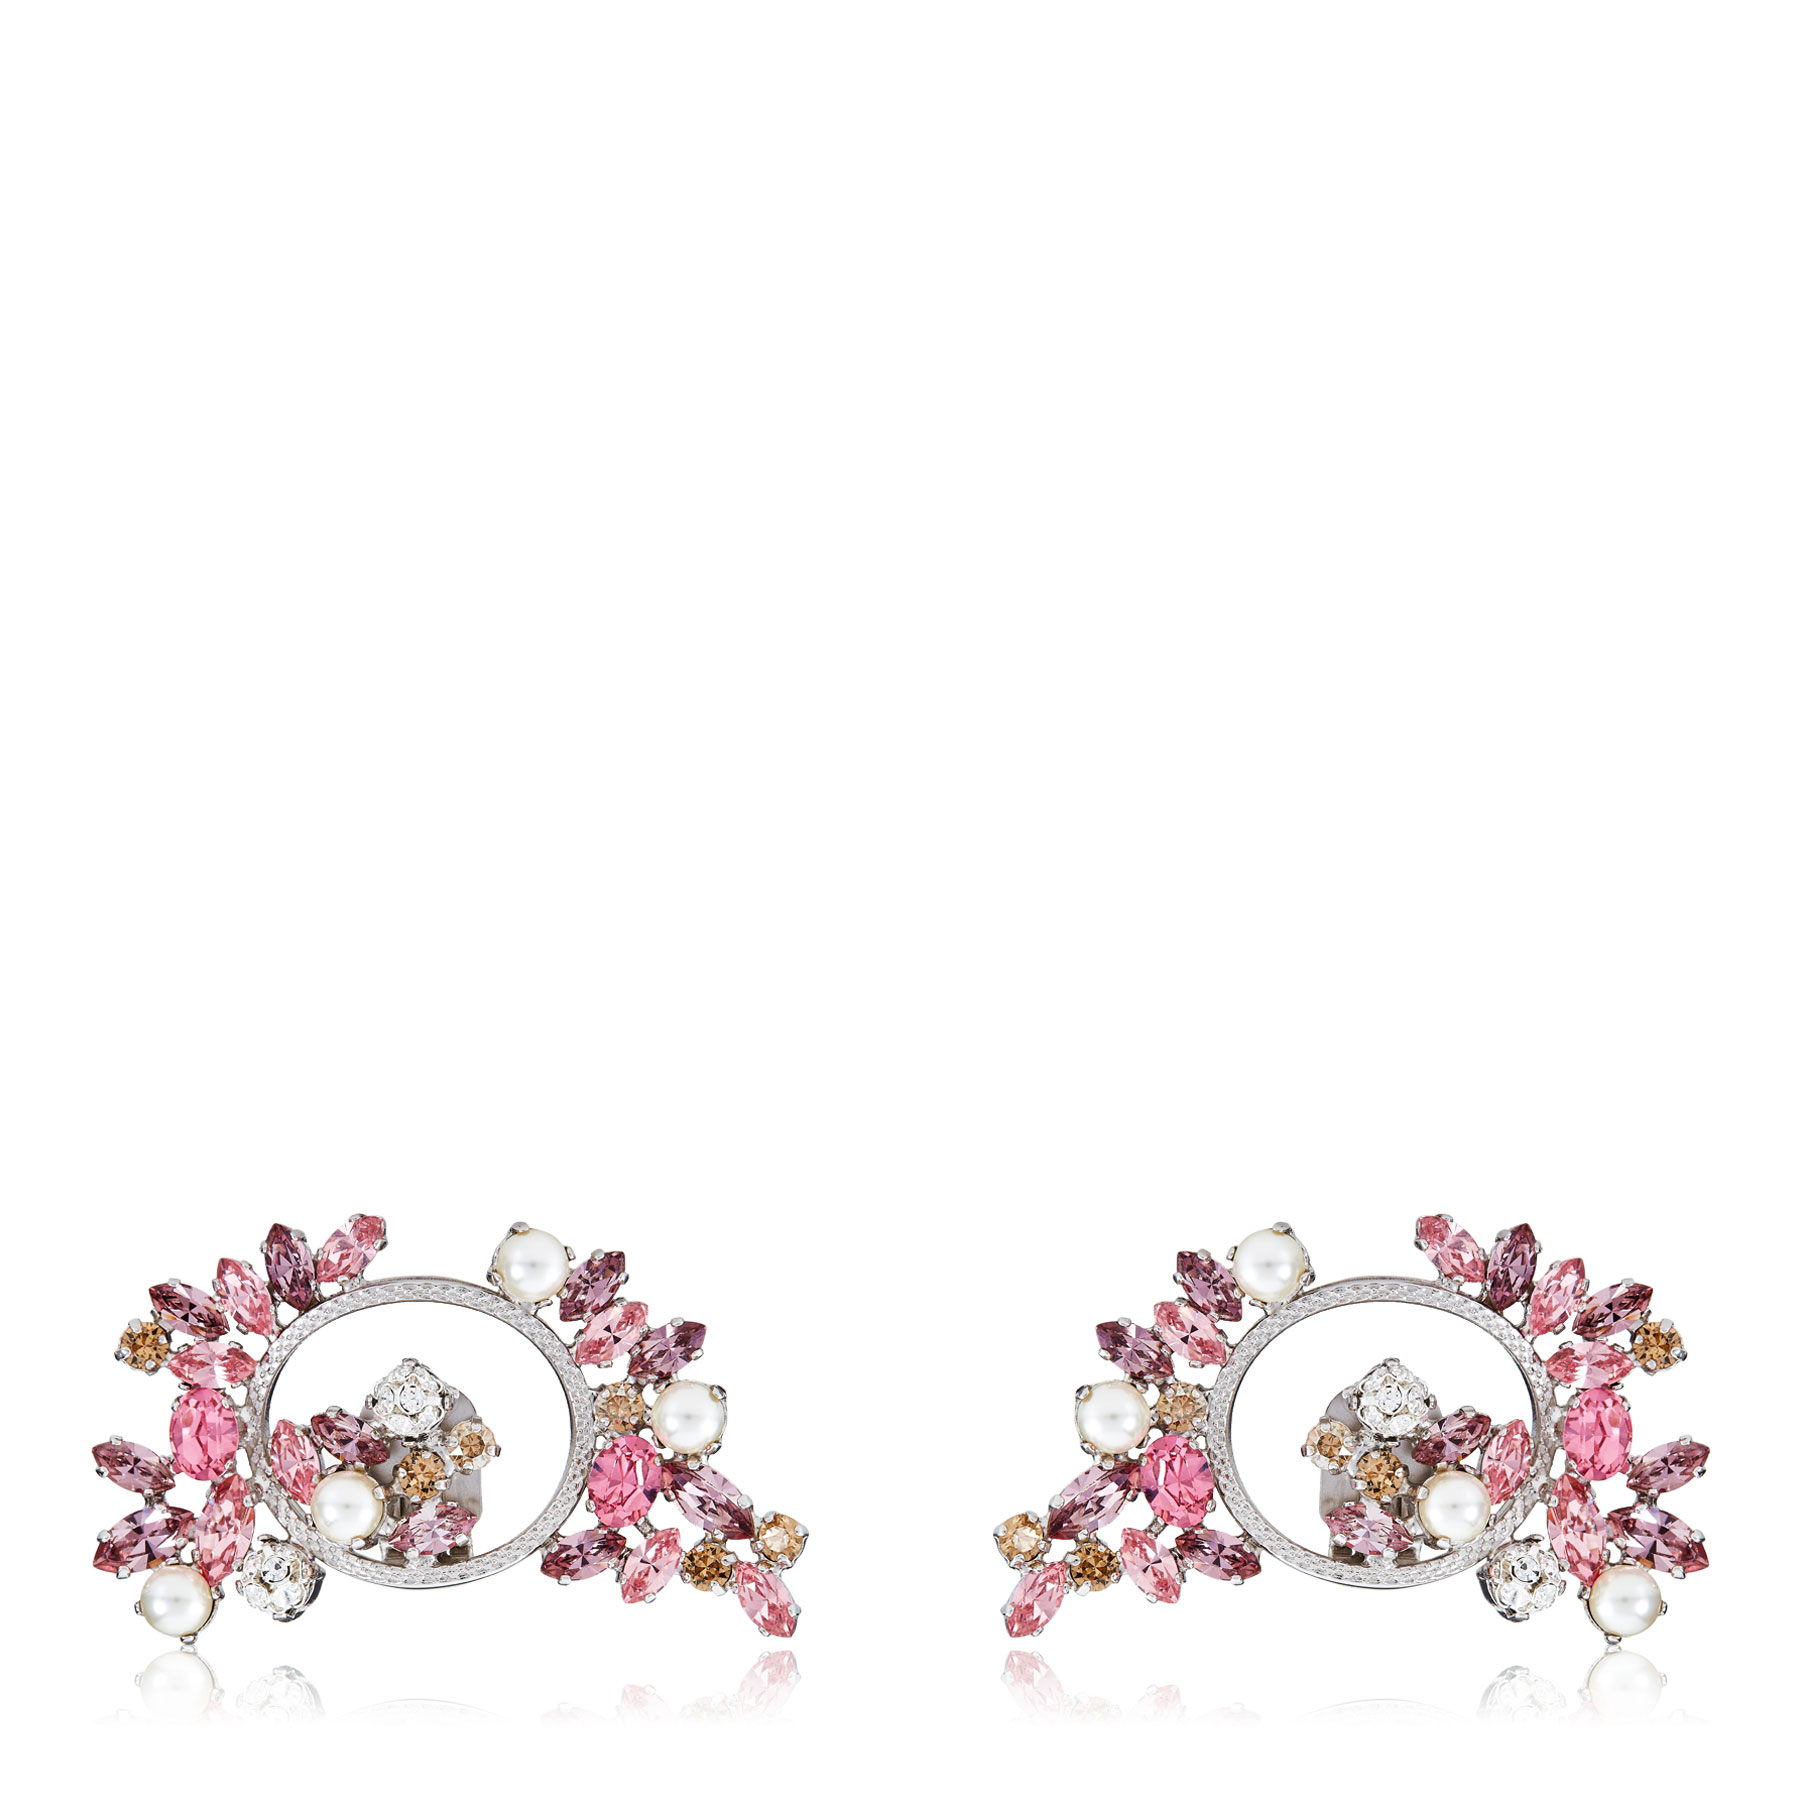 ADELLE Camellia Mix Metal with Crystals and Pearls Shoe Clips